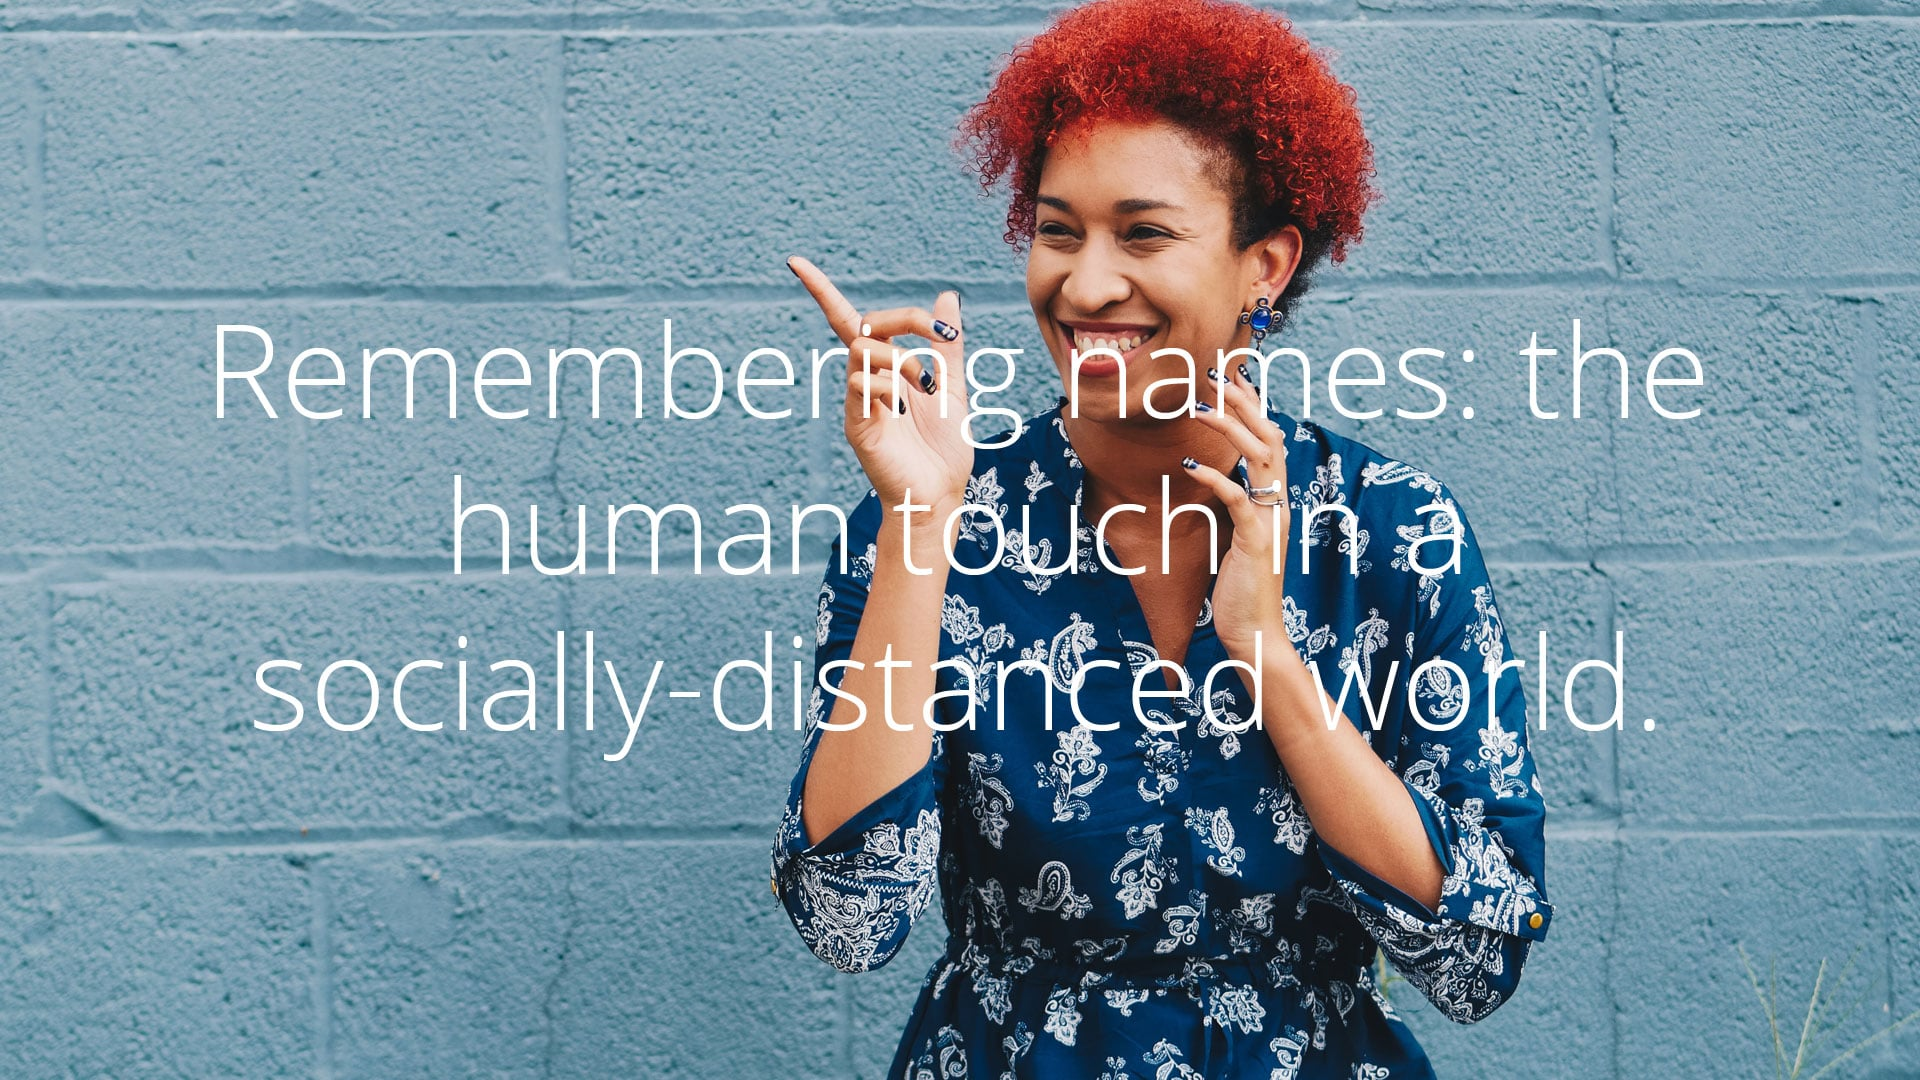 What's in a name? Why getting people's names right is part of effective communication, and 9 steps to help you remember and pronounce names correctly.